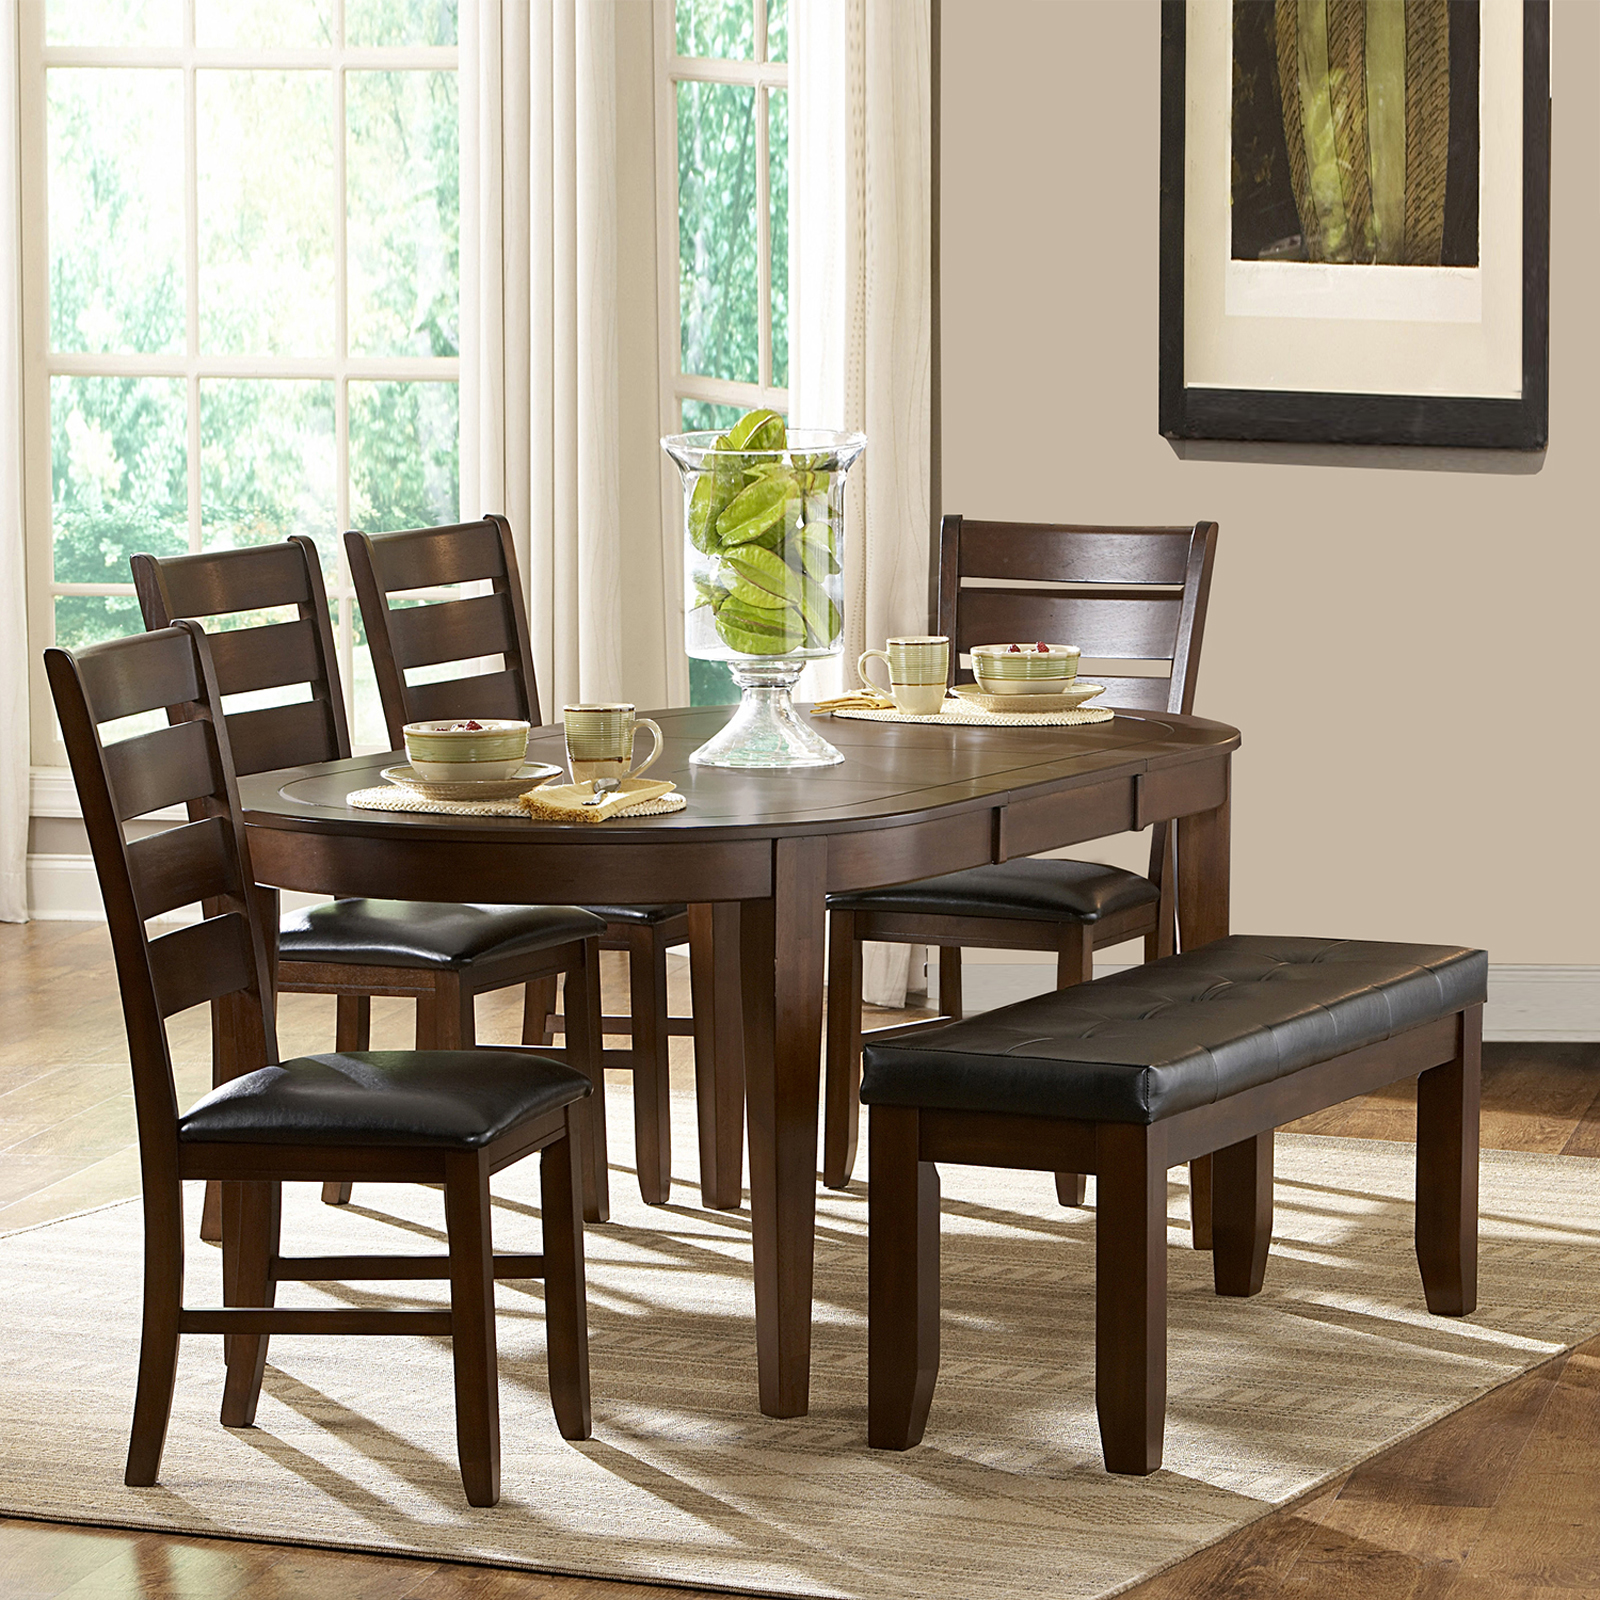 kitchen table with leaf insert best quality faucets oxford creek albany 6 piece oval shape dining set home